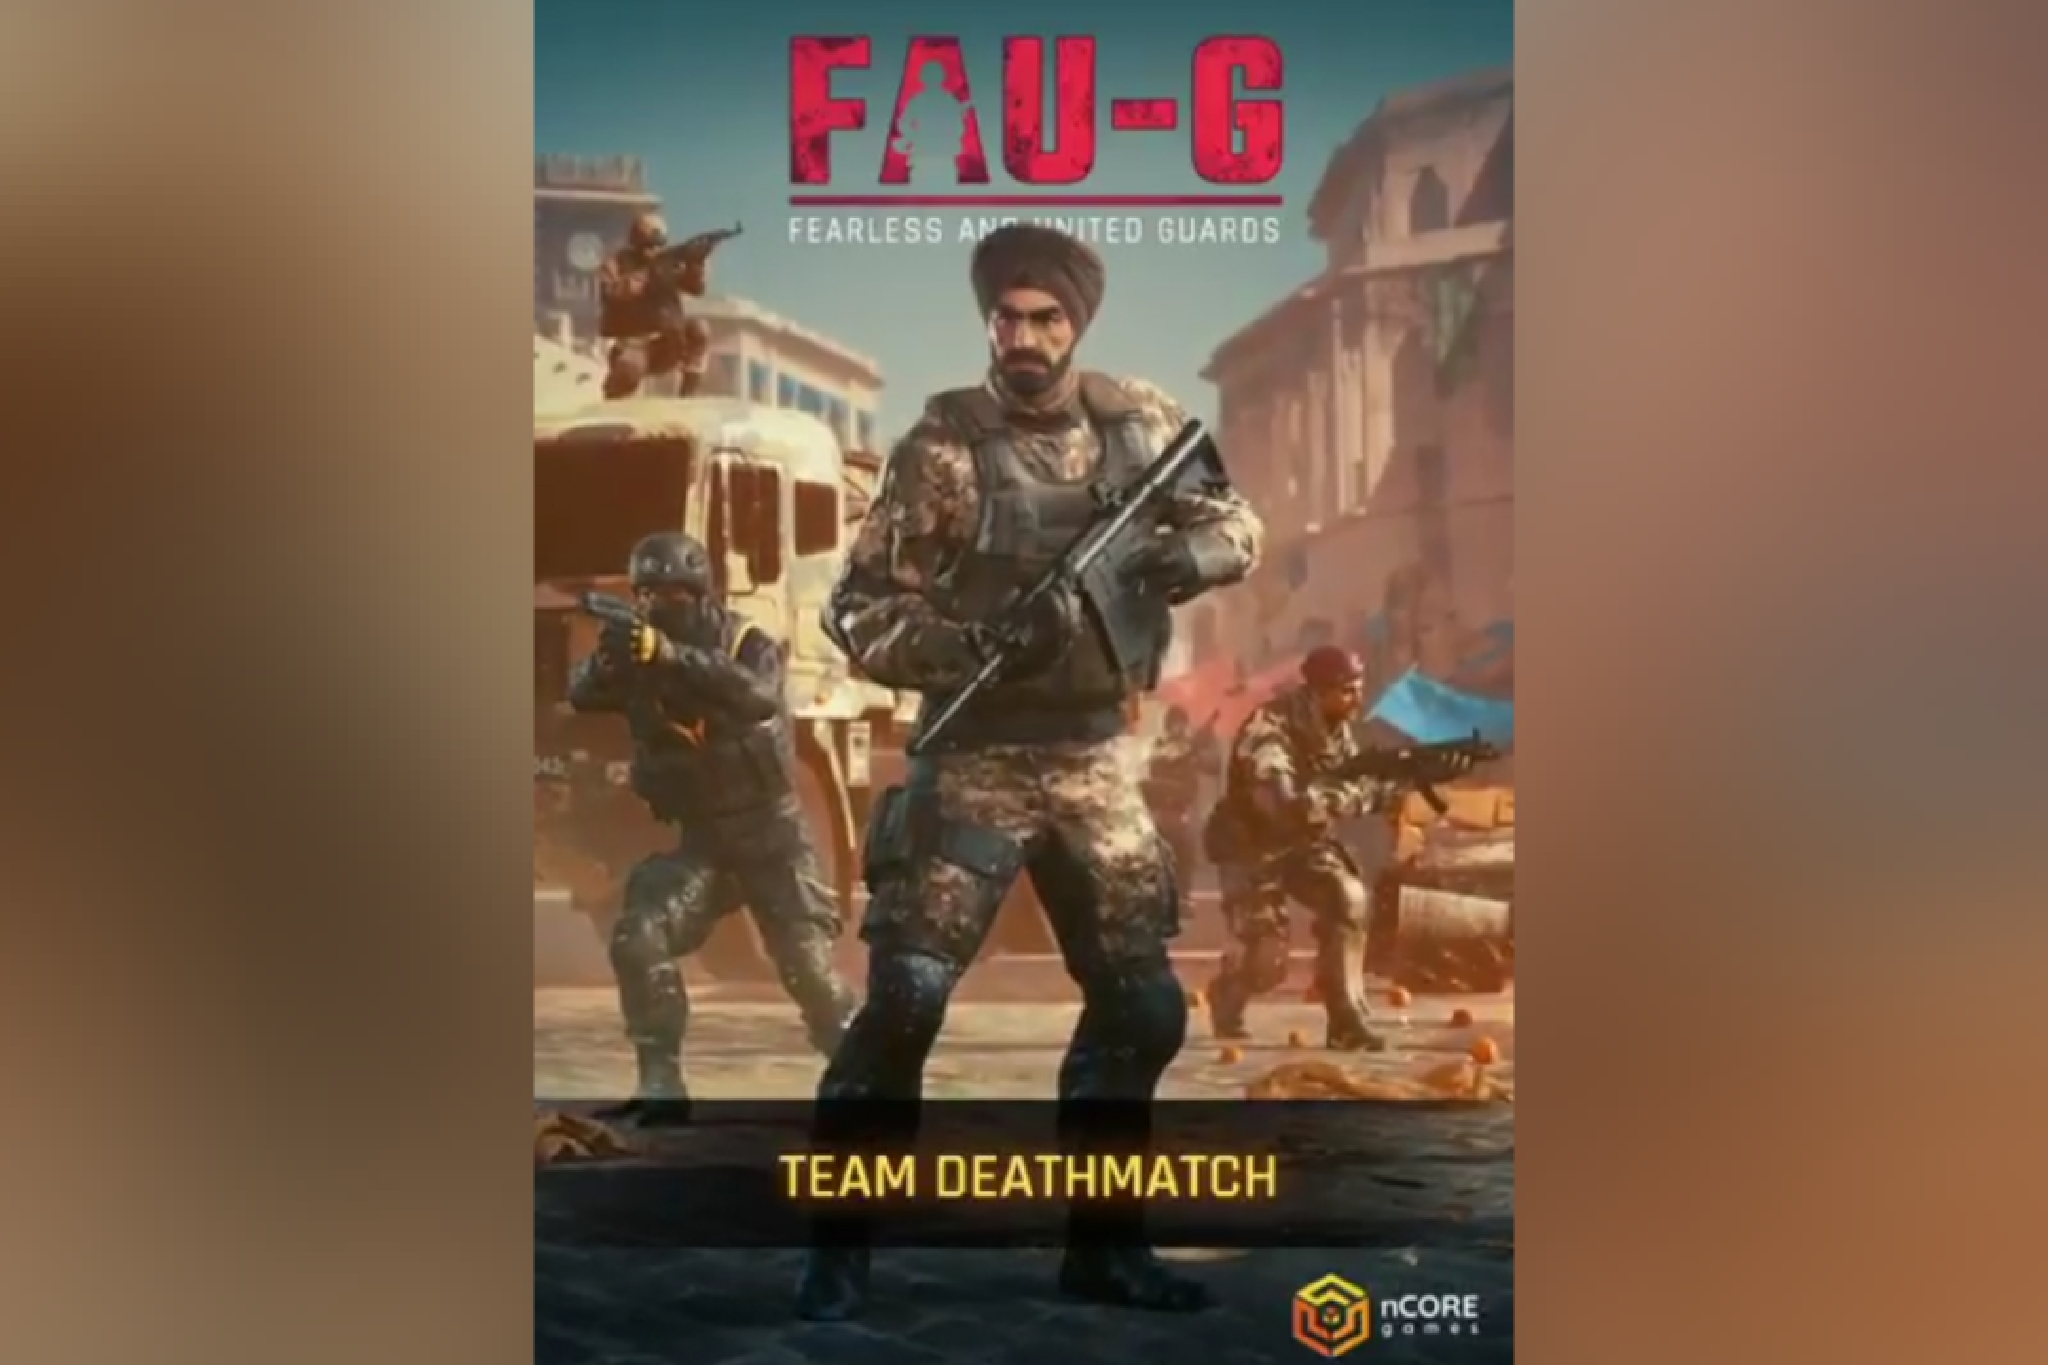 FAU-G multiplayer mode is coming soon